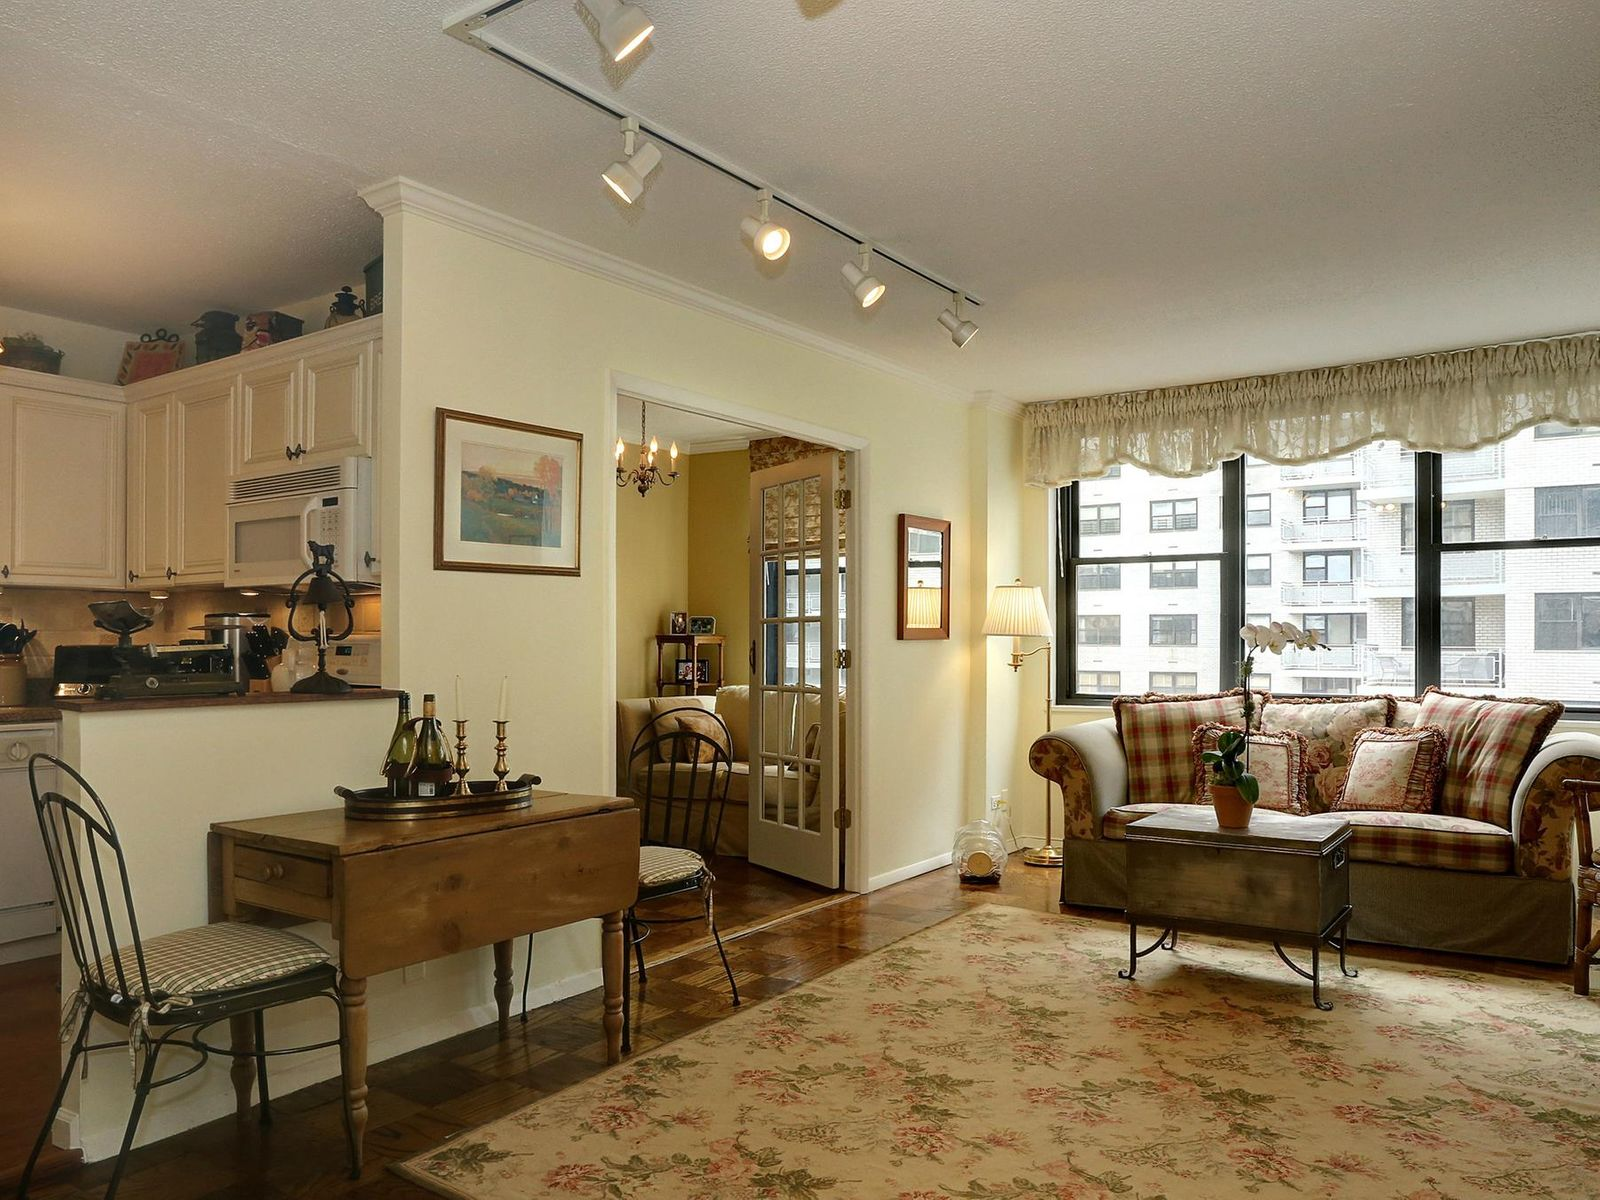 301 East 87th Street, New York NY Cooperative - New York City Real Estate